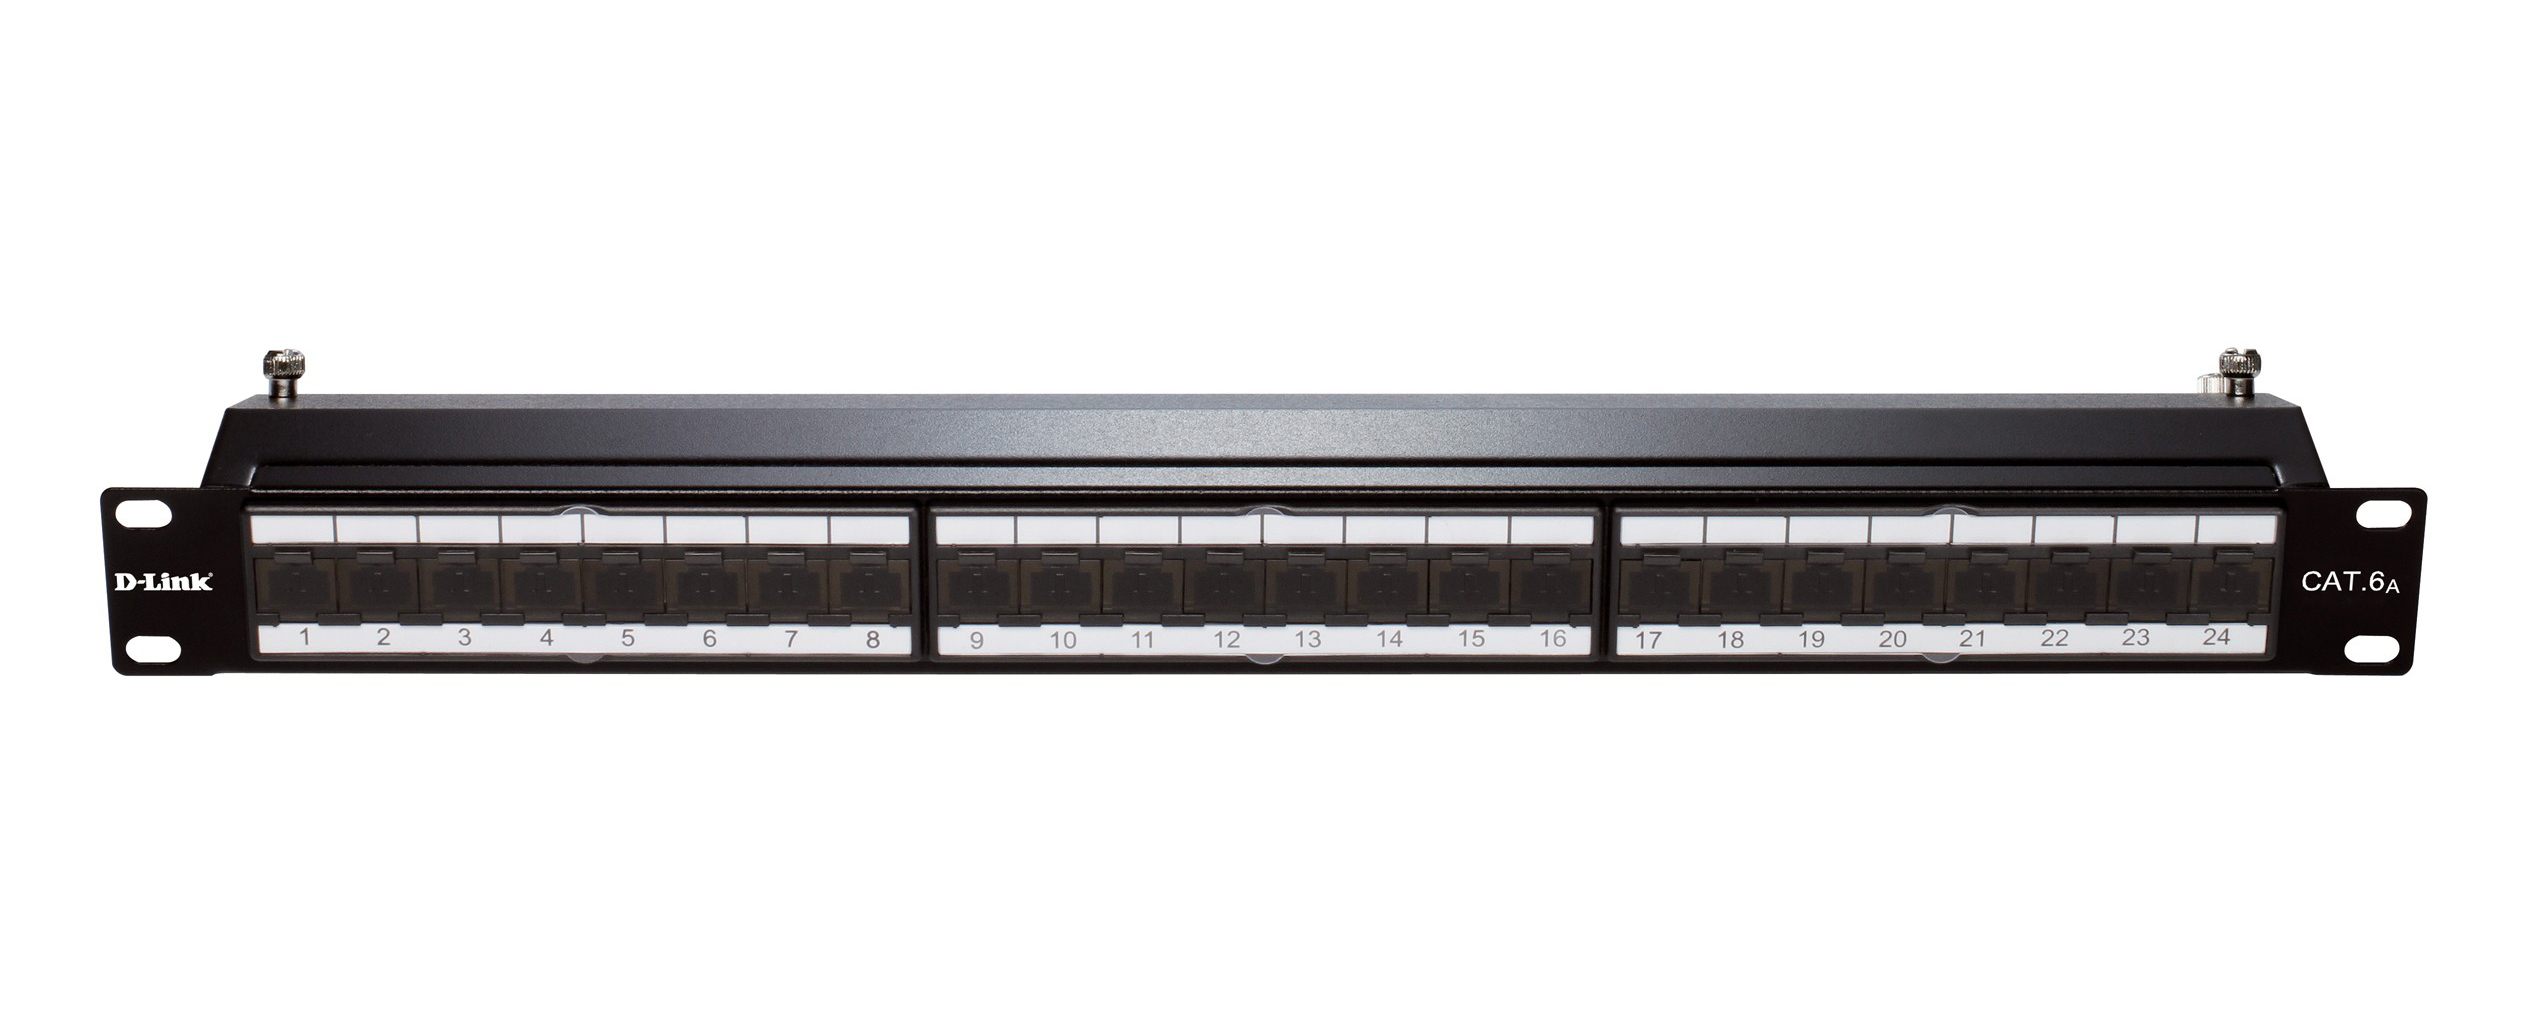 D-Link Patch Panel Cat 6A Shielded Keystone- 24 Port-Loaded